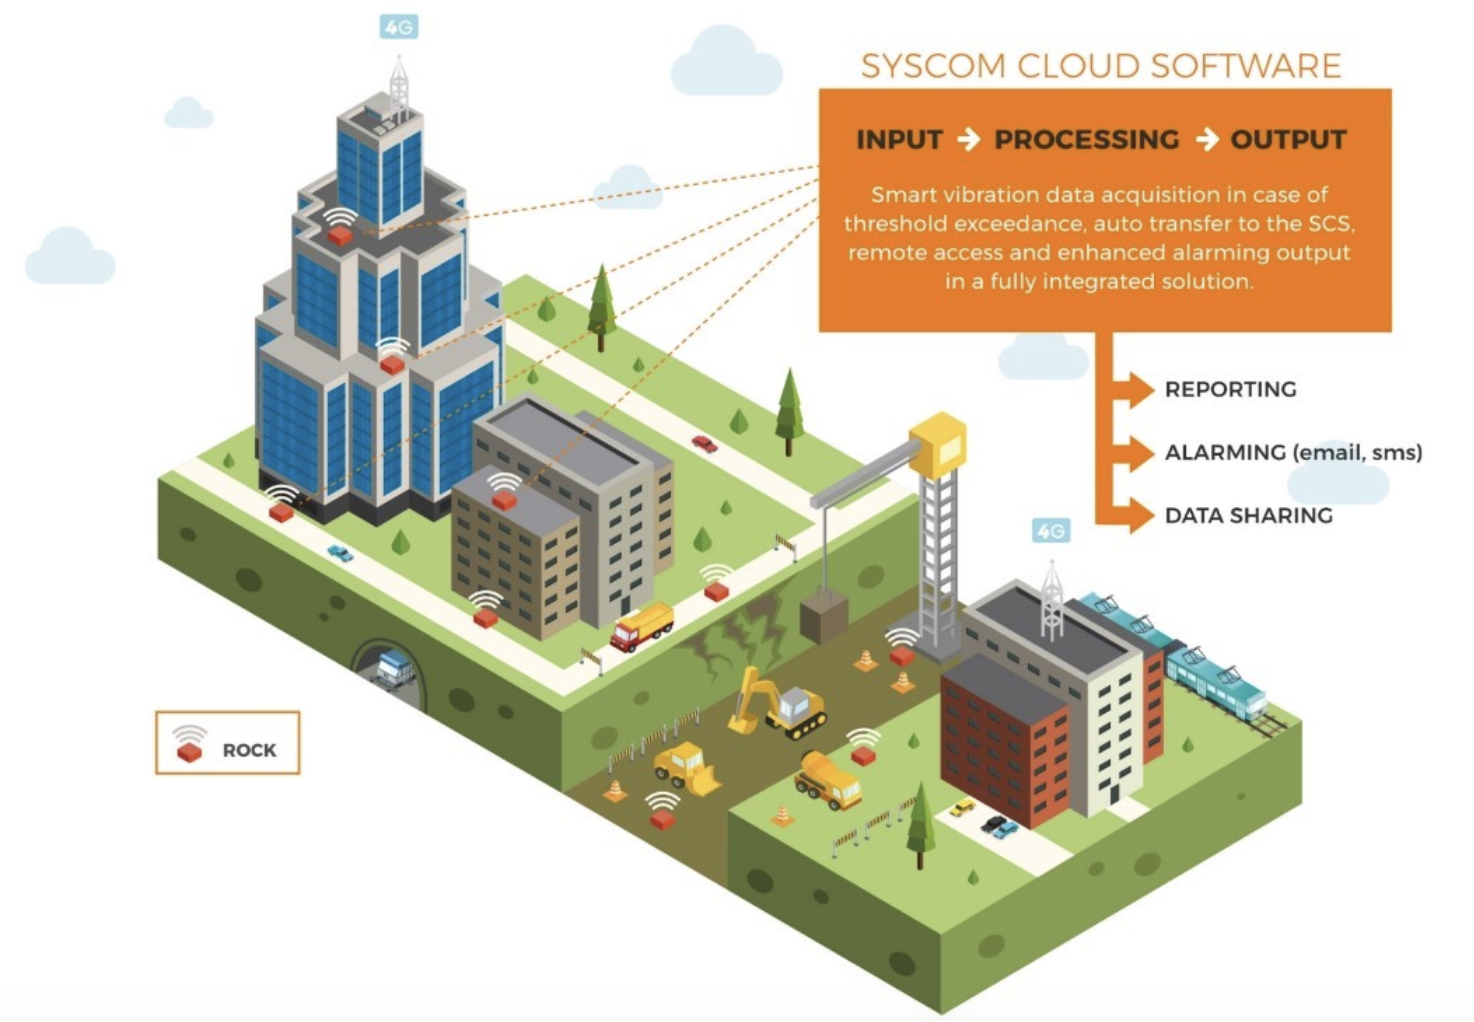 Syscom Cloud Software